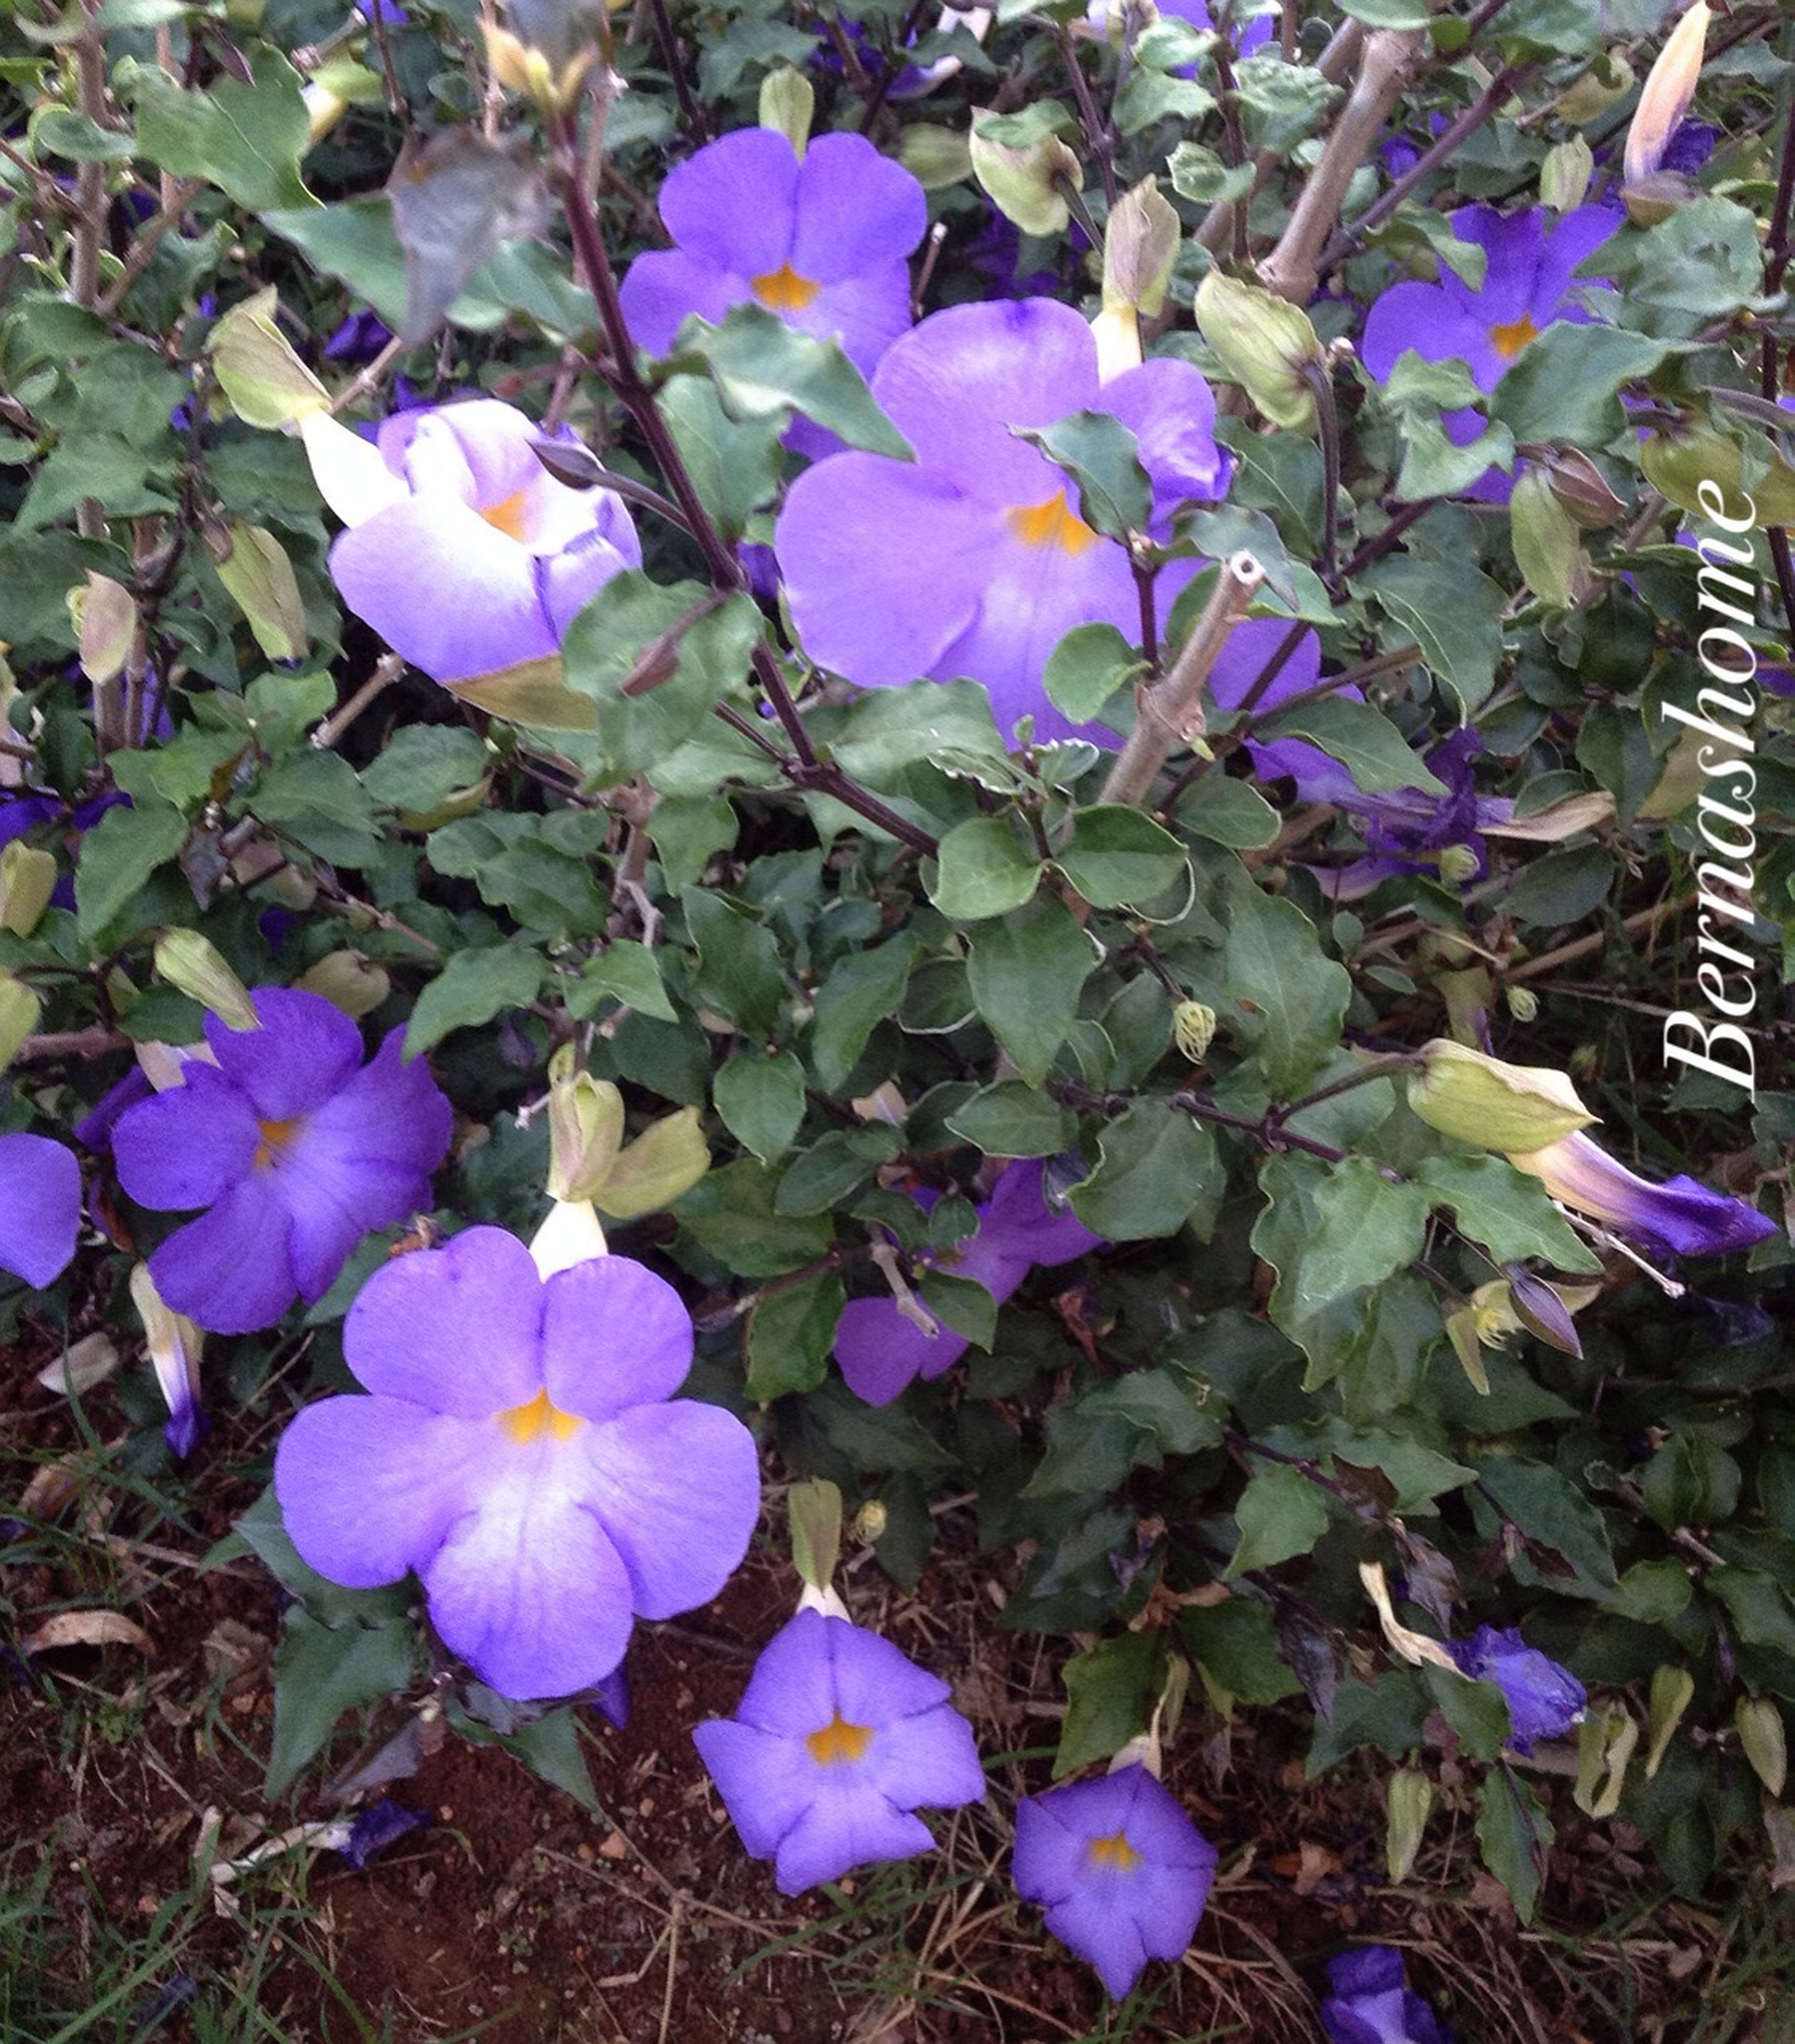 flower, purple, freshness, fragility, petal, growth, high angle view, beauty in nature, leaf, flower head, blooming, plant, nature, in bloom, field, close-up, botany, outdoors, day, no people